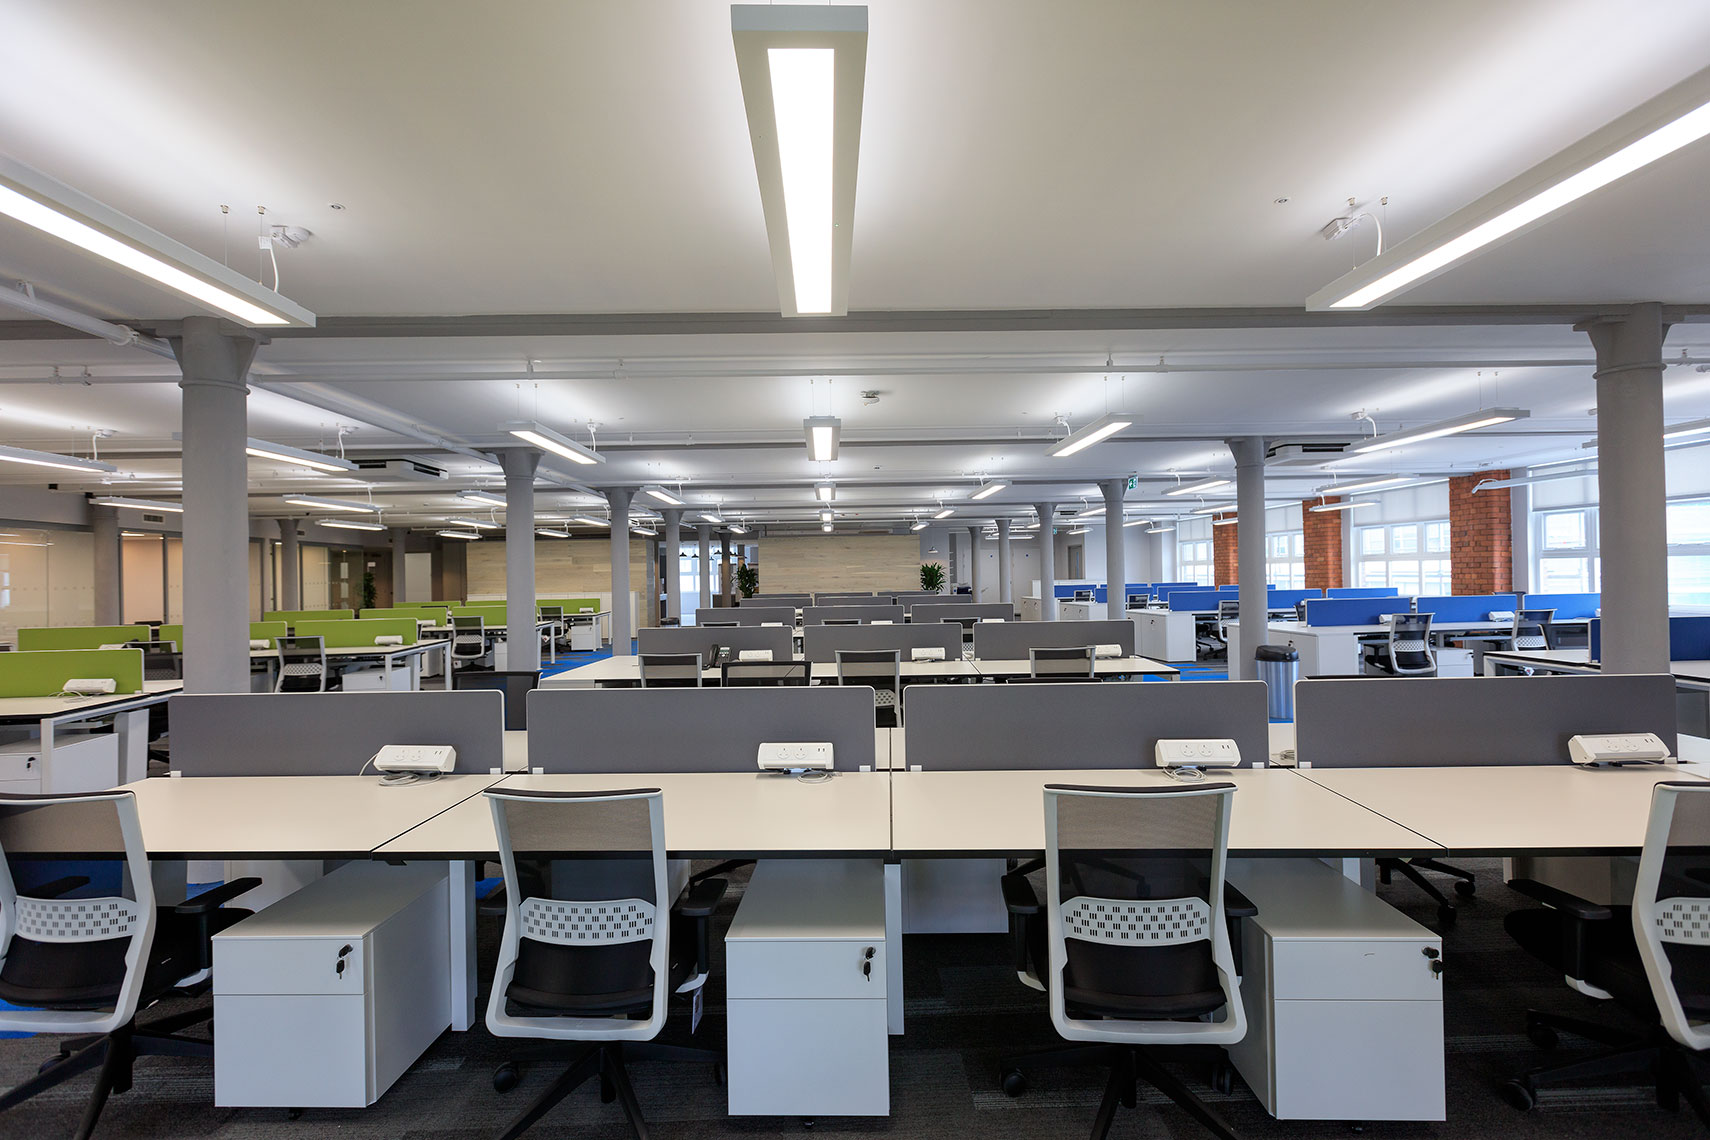 Interior fit-out architecture of open plan business offices in refurbished building in Manchester UK